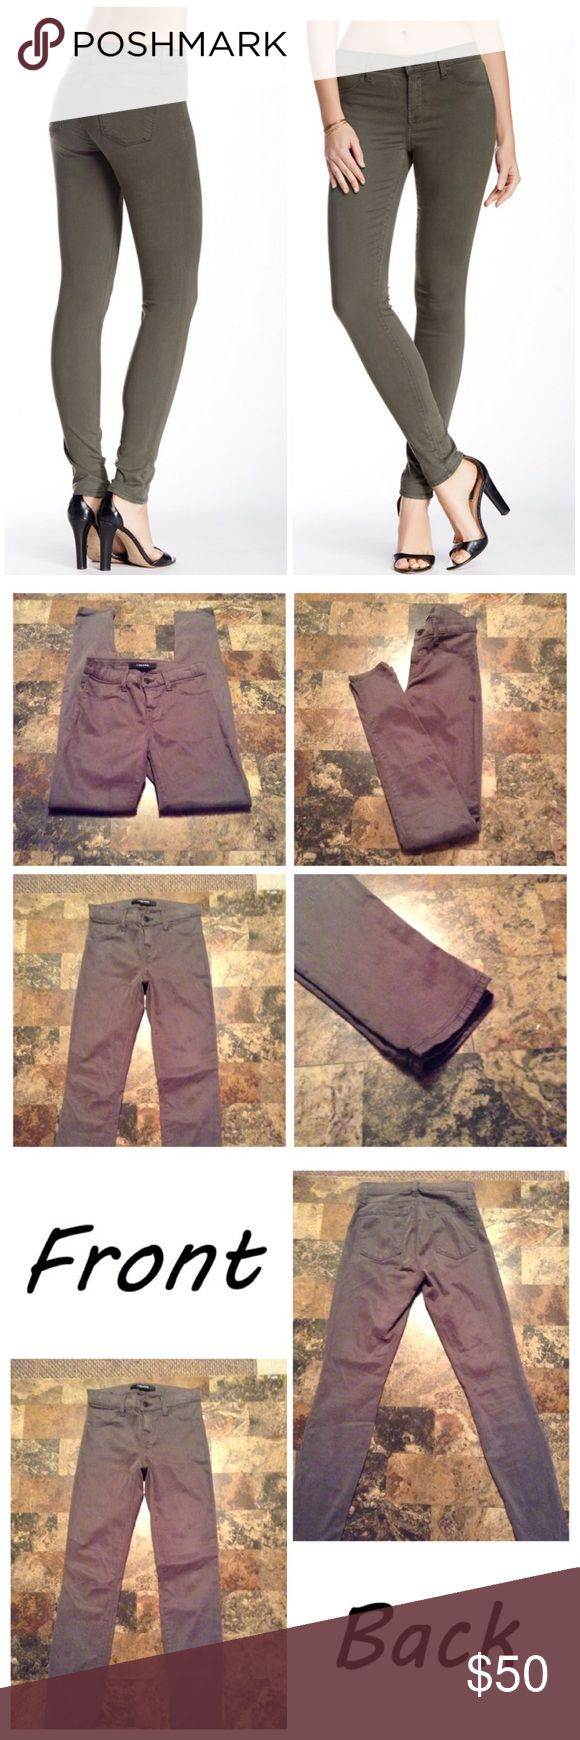 """J Brand Super Skinny Jeans First pic of model wearing this style of skinny. Last 3 pics are of actual item/color. Waist 25. 2 back pockets. Faux front pockets. 64% Lyocell & 34% cotton & 2% Elastane. Stretches. Armour color. Rise is """"9.5 Mid-rise. Laying flat """"12.5. Length """"39. Leg Opening """"4.5. Inseam """"30. This item is not new, It is used & in Good condition, Authentic & from a Smoke And Pet free home. All Offers thru the offer button ONLY. I Will not negotiate Price in the comment section…"""